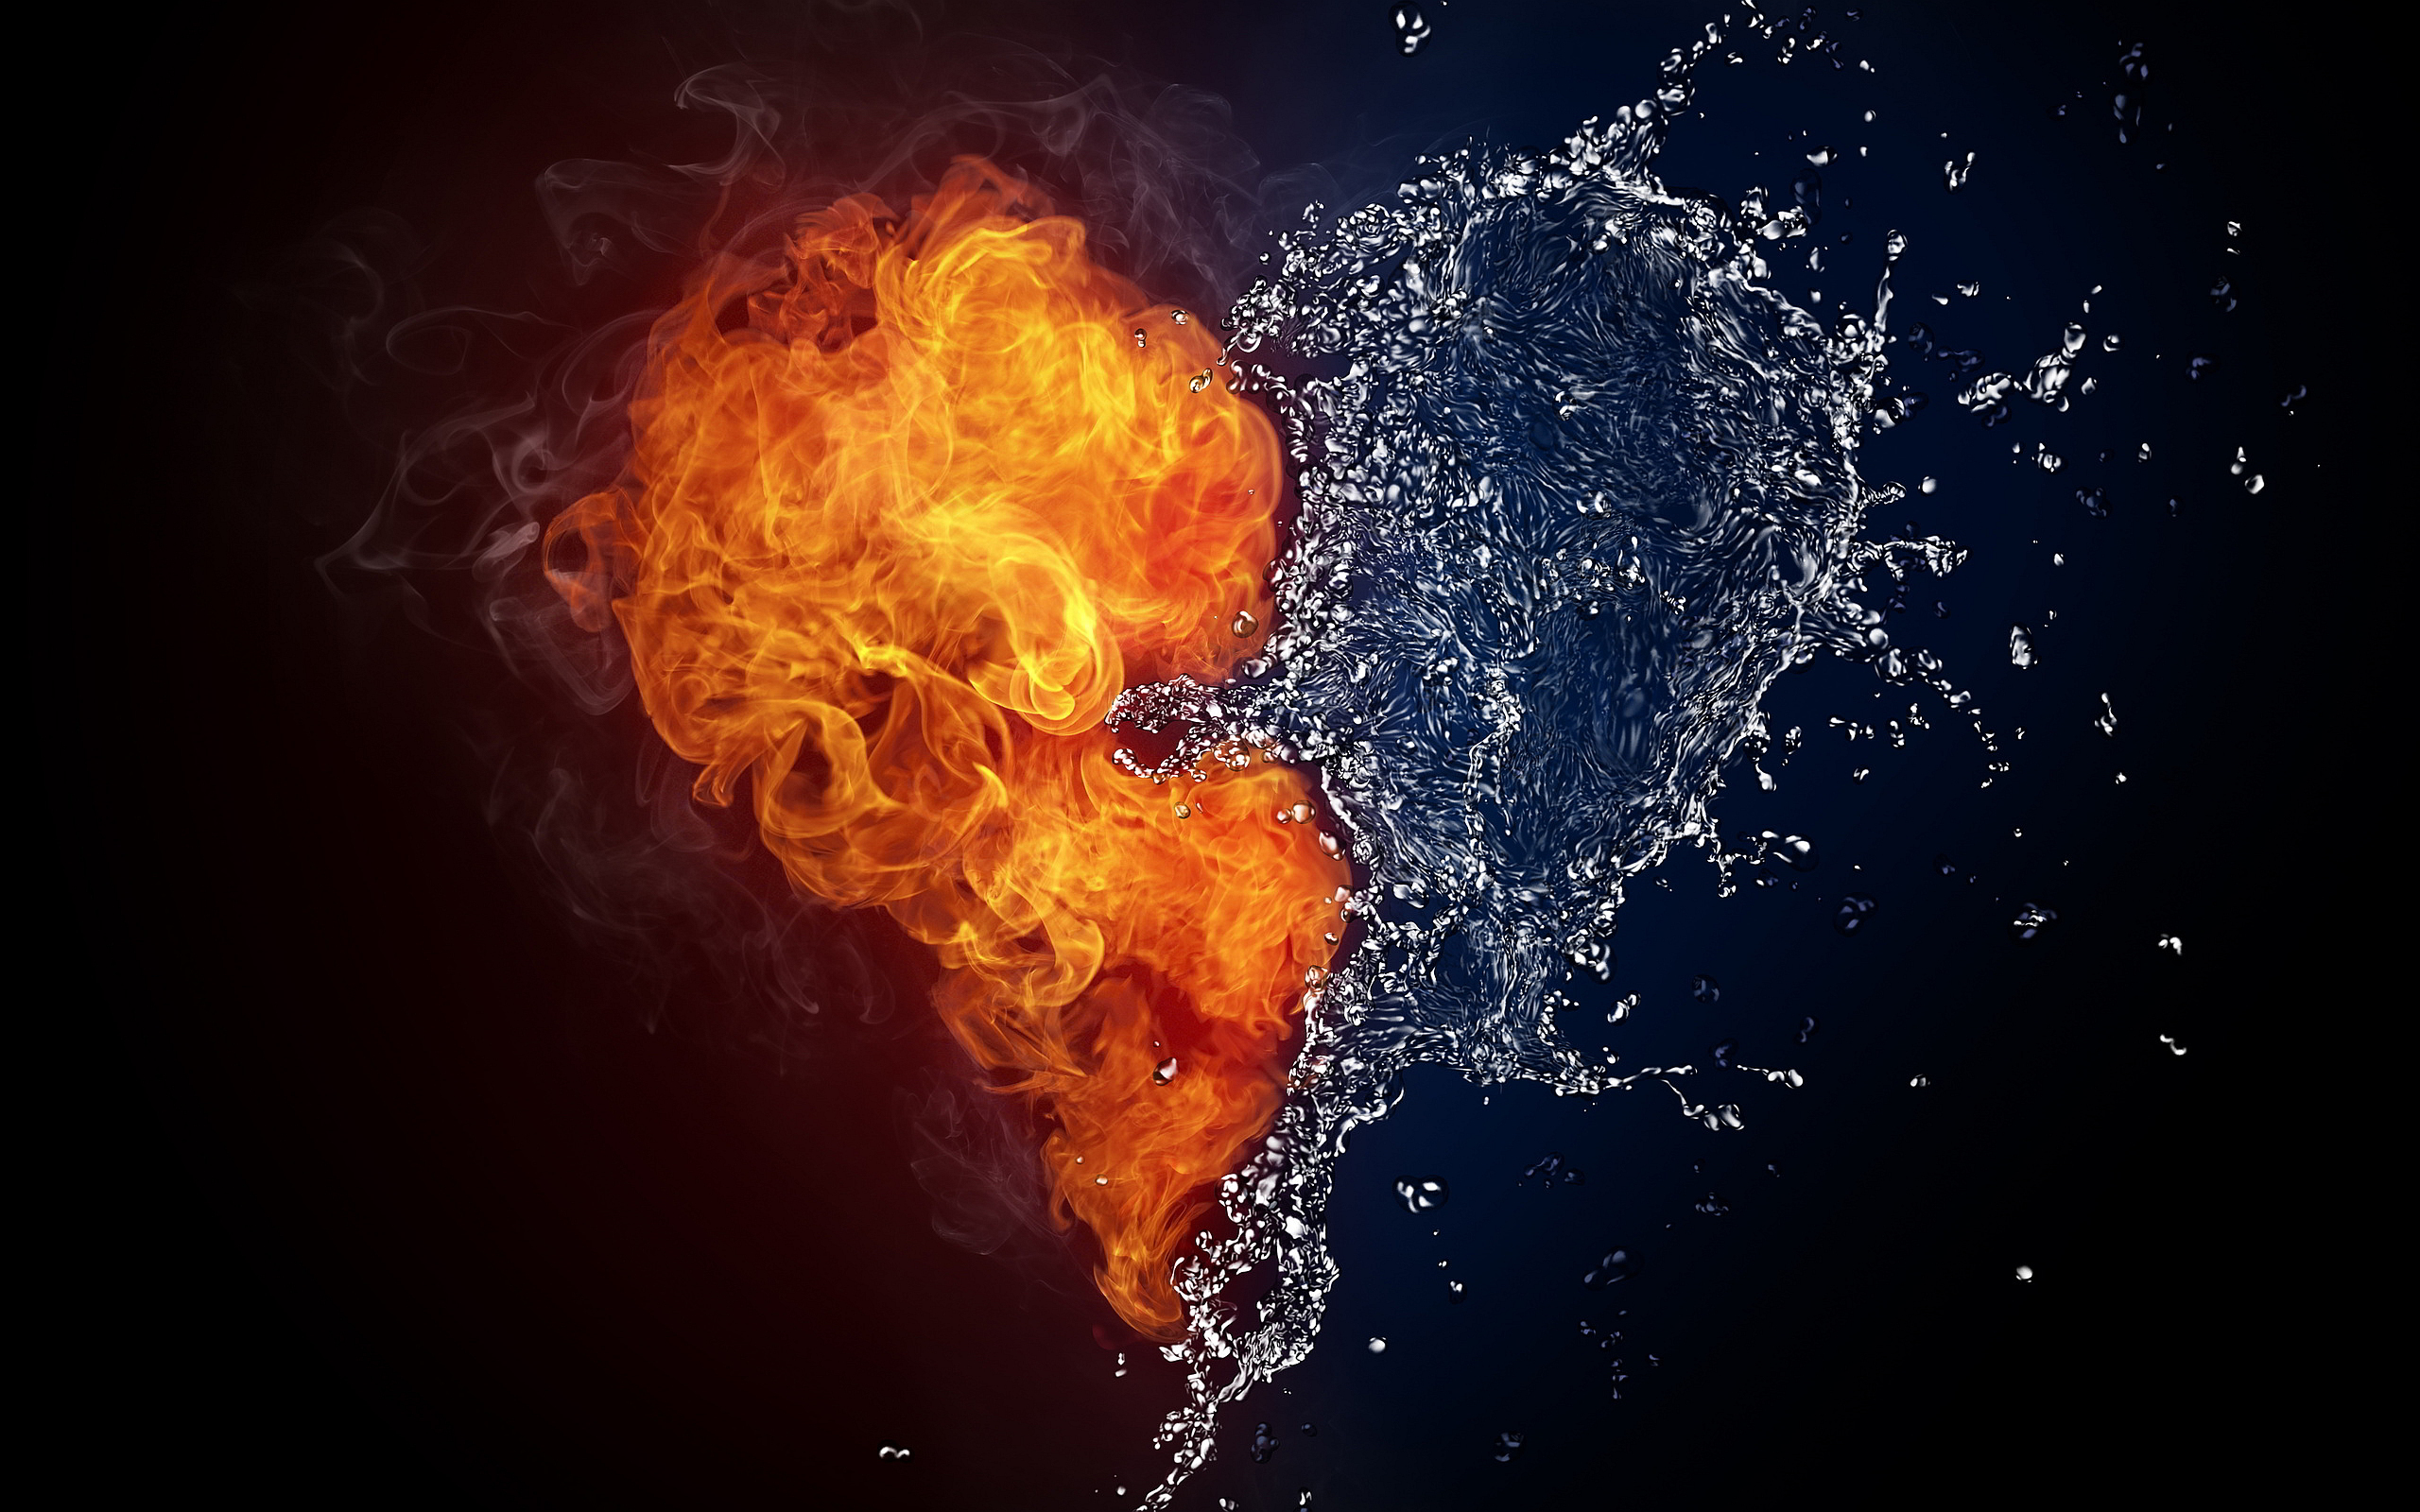 720x1280 Fire Water Heart Art Moto Gx Xperia Z1z3 Compactgalaxy